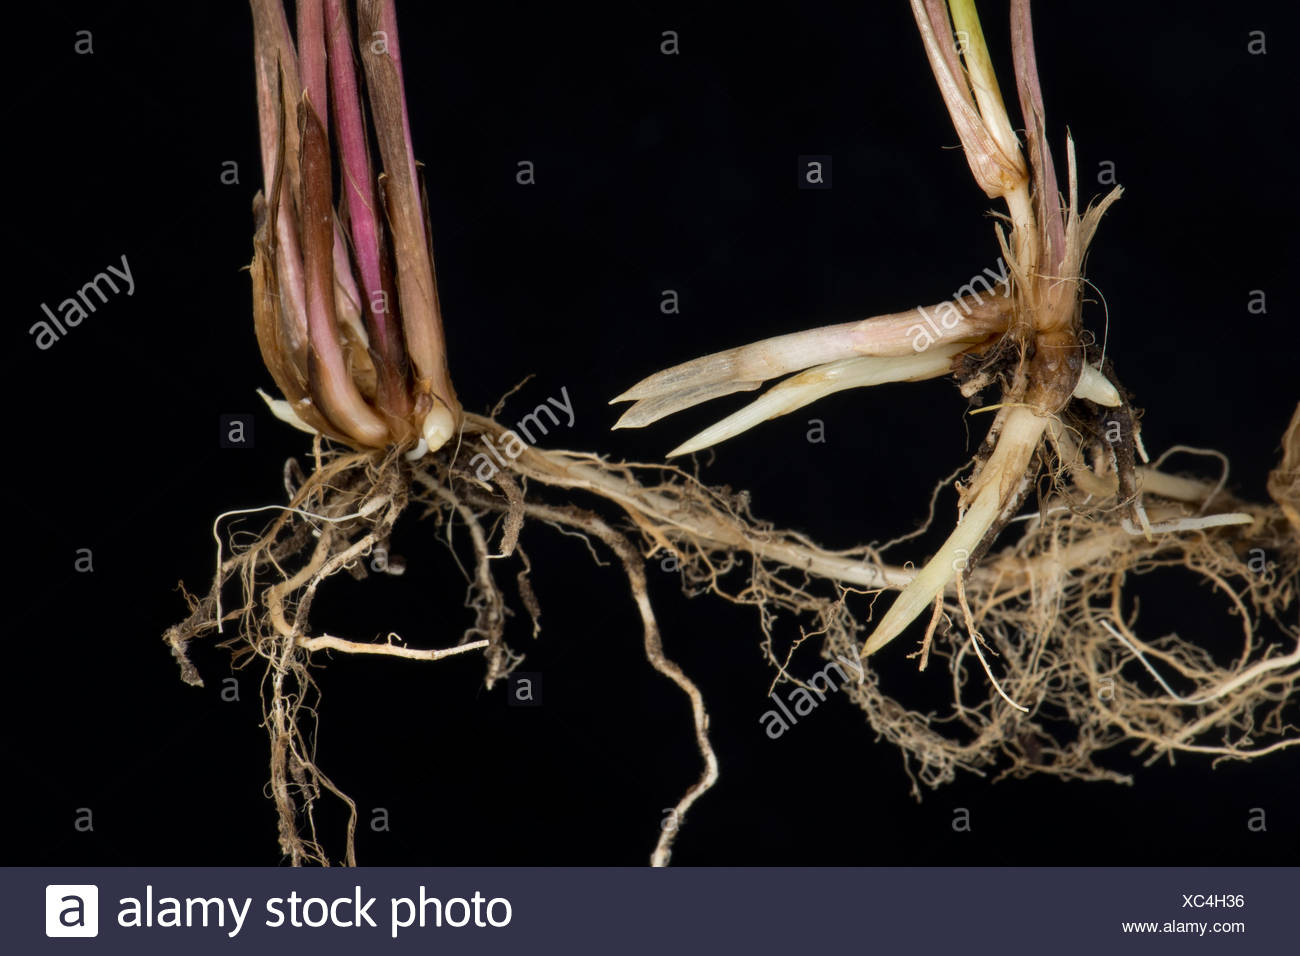 Common couch, Elymus repens, shoots and roots from underground rhizomes of this invasive perennial creeping grass weed - Stock Image